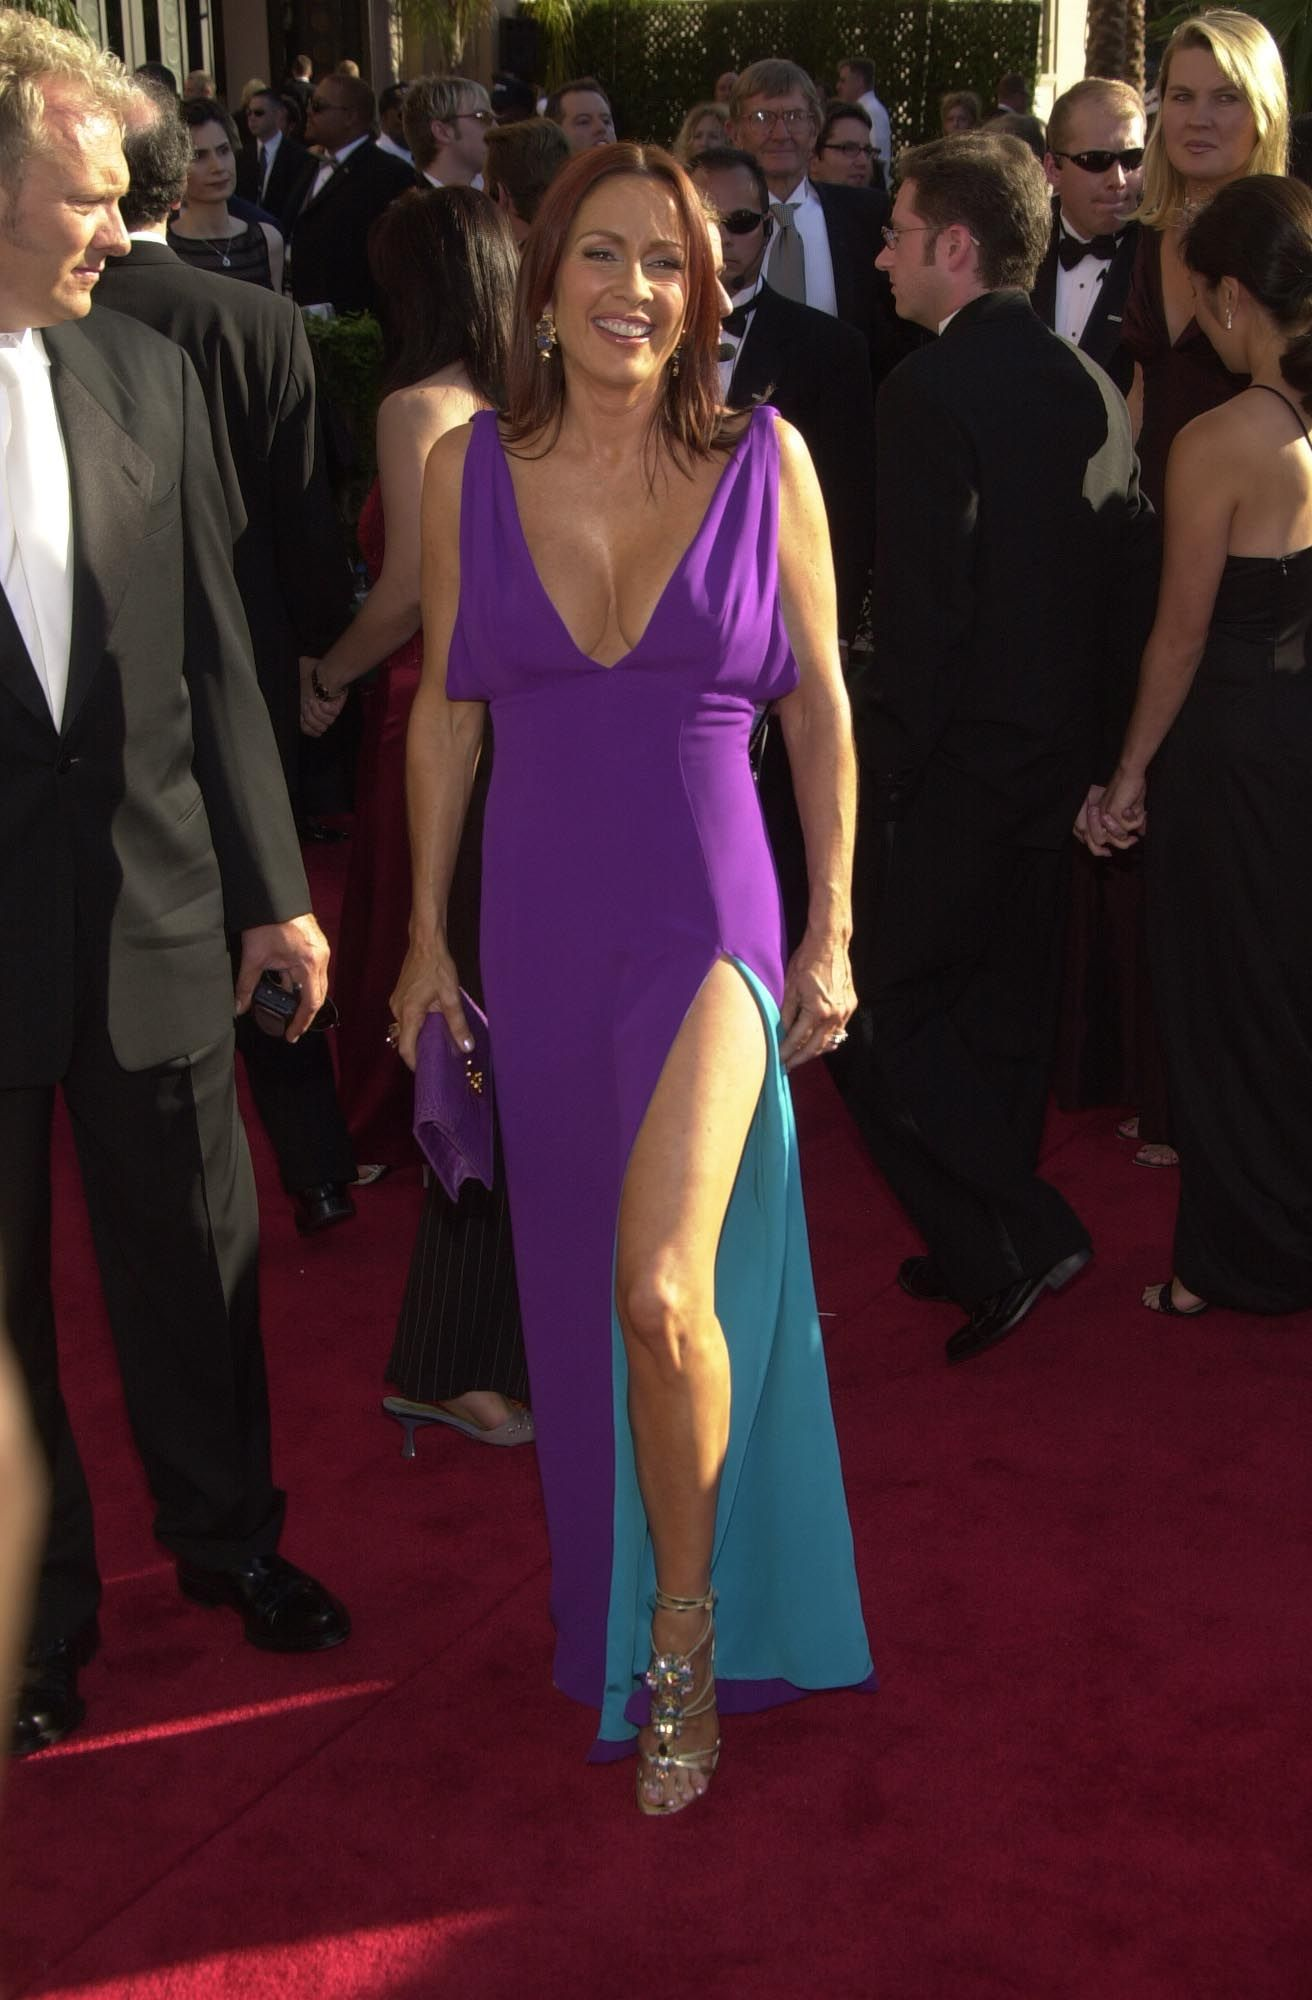 patricia heaton - purple dress, but some different poses